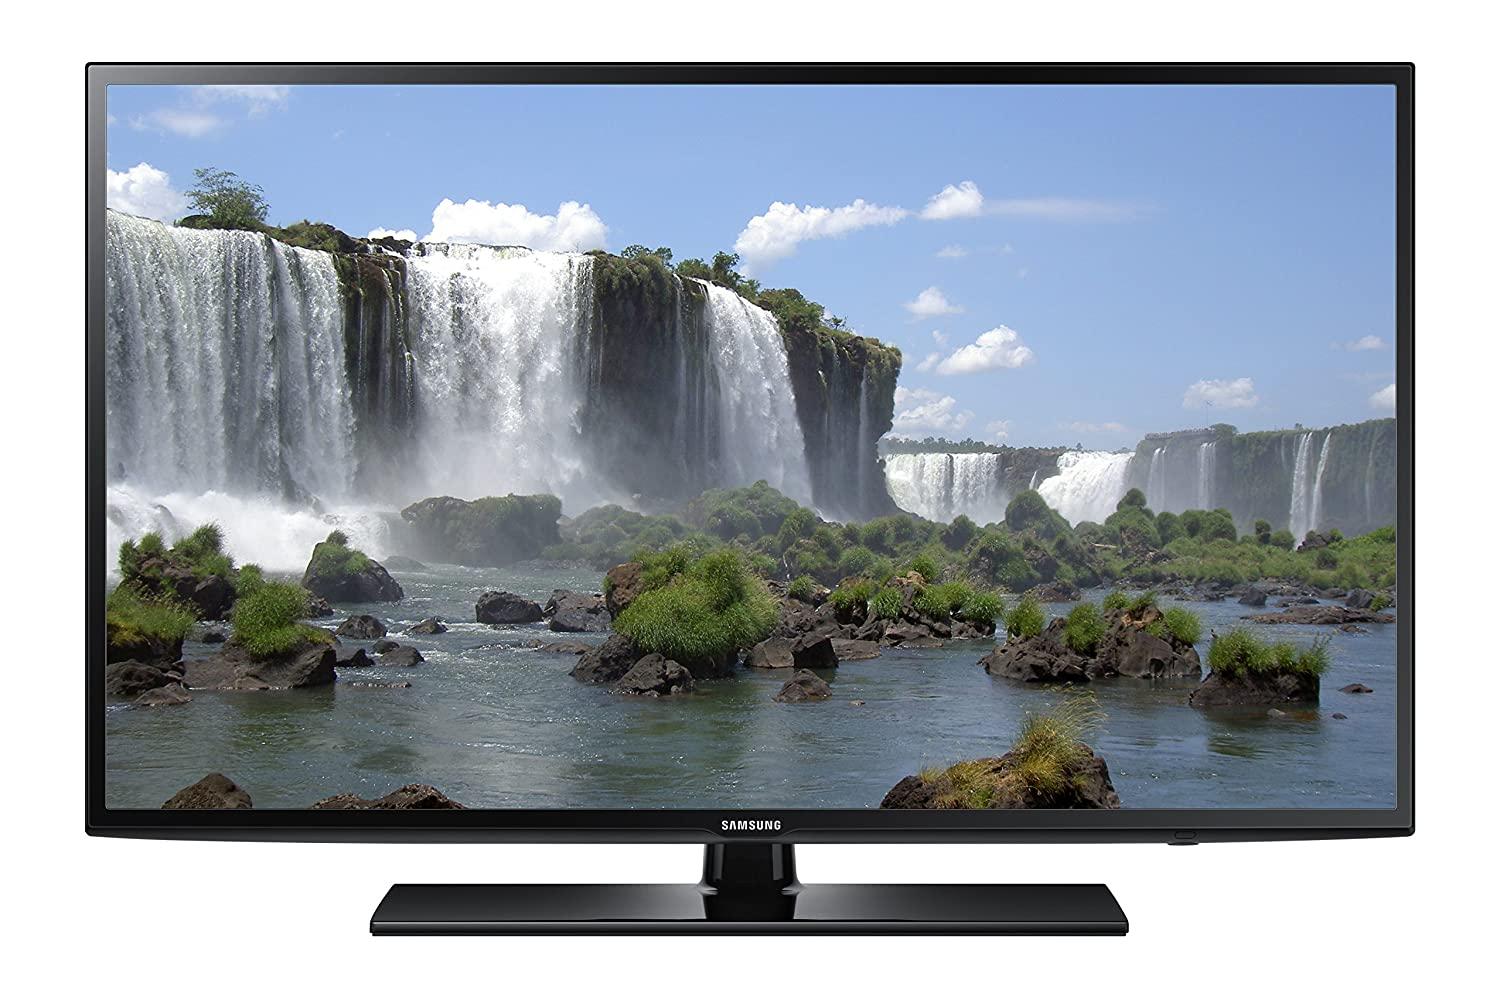 Amazon Com Samsung Un55j6200 55 Inch 1080p Smart Led Tv 2015 Model